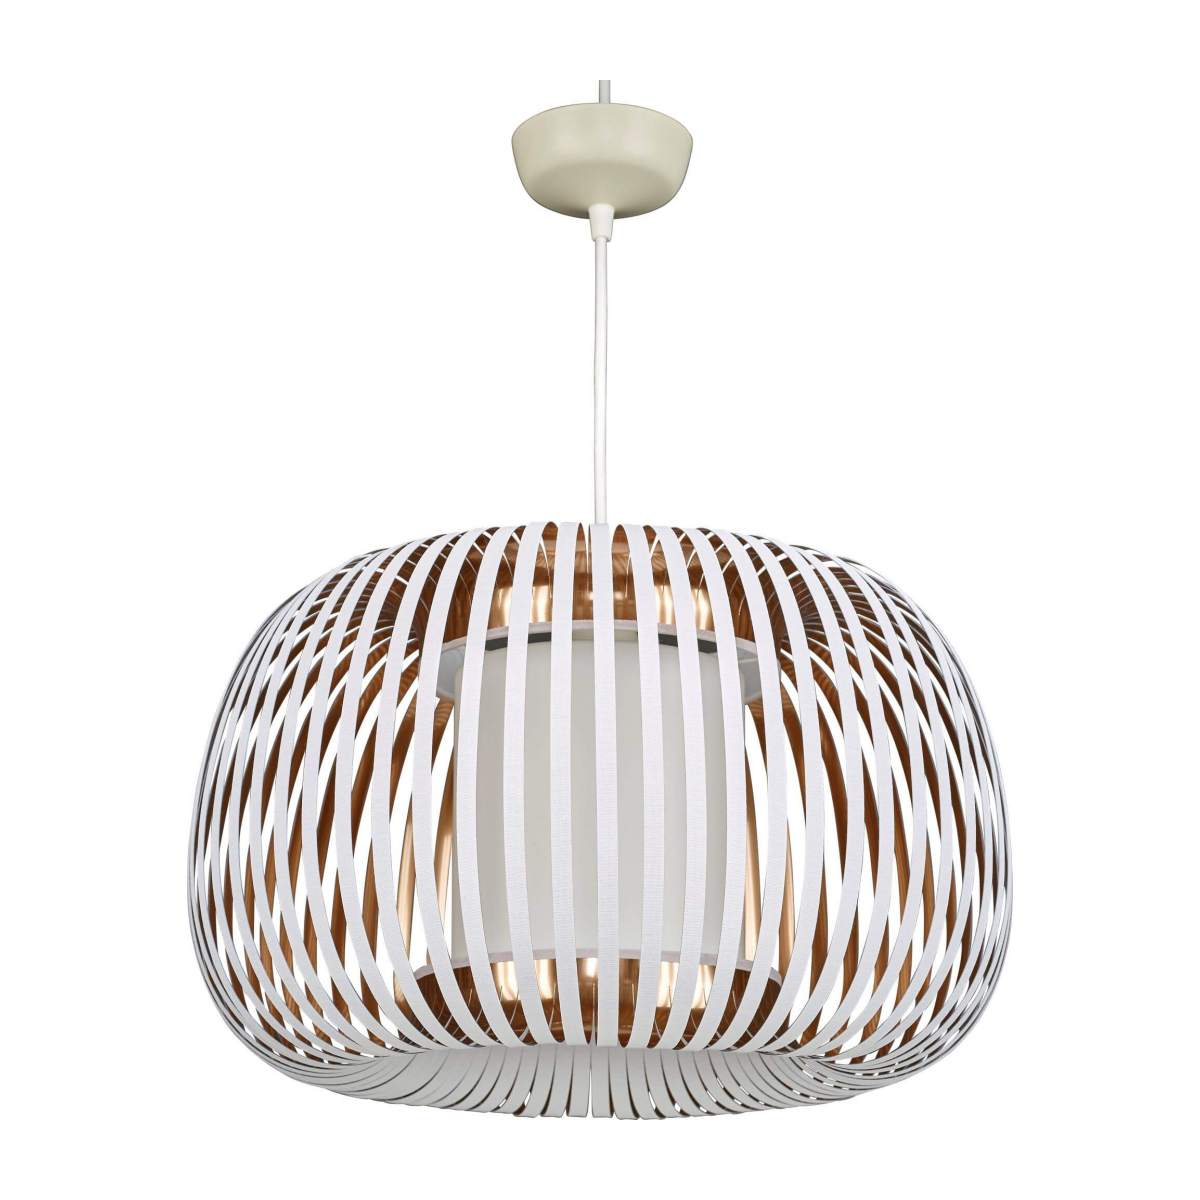 Ceiling lamp in PVC, white and copper n°1